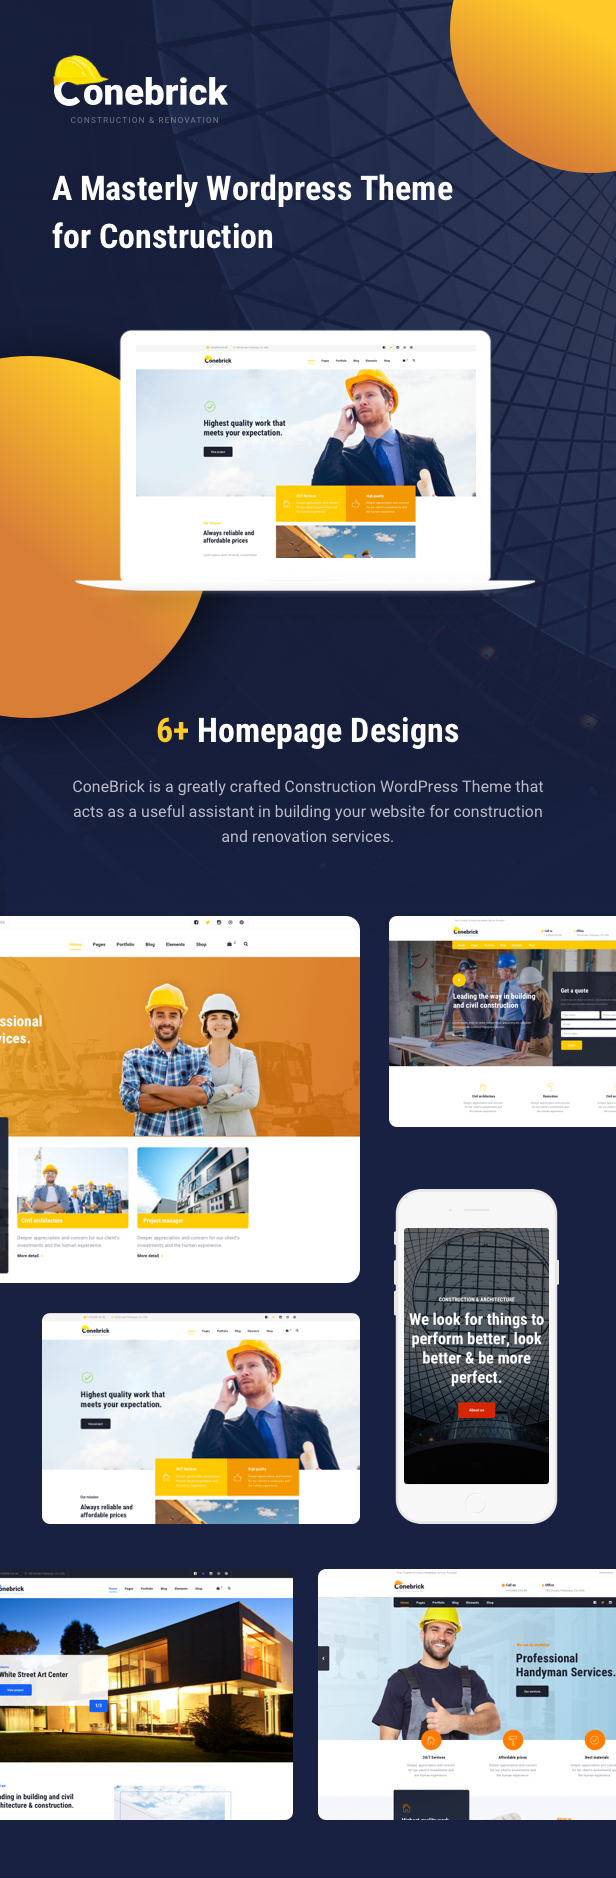 Building Company WordPress Theme - 6+ Homepages